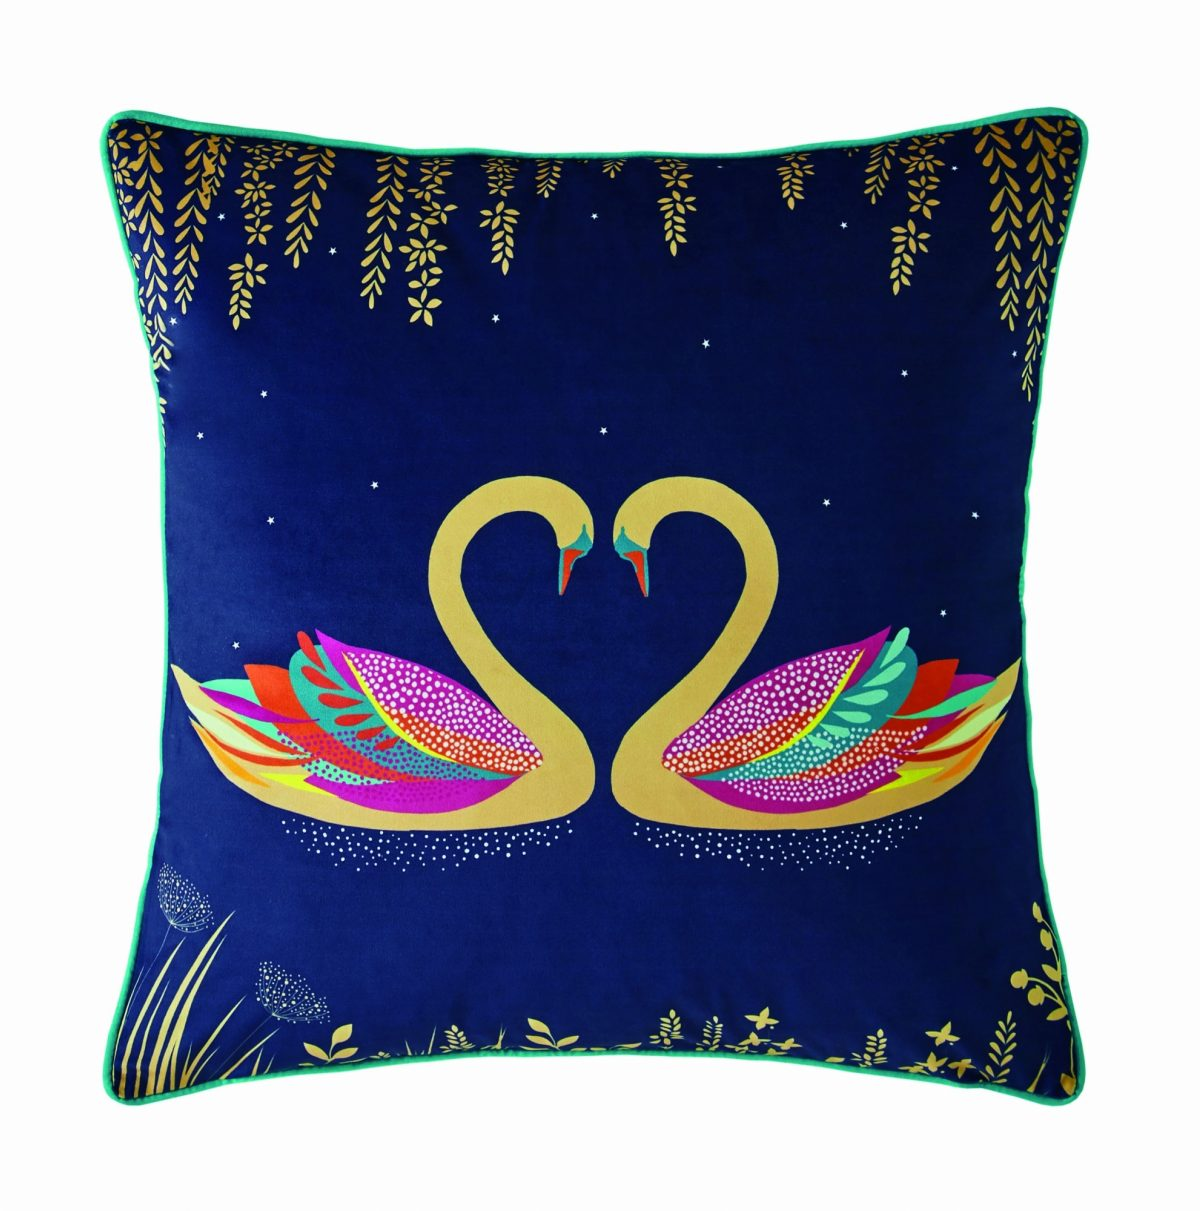 Swan Navy Cushion 50x50 1